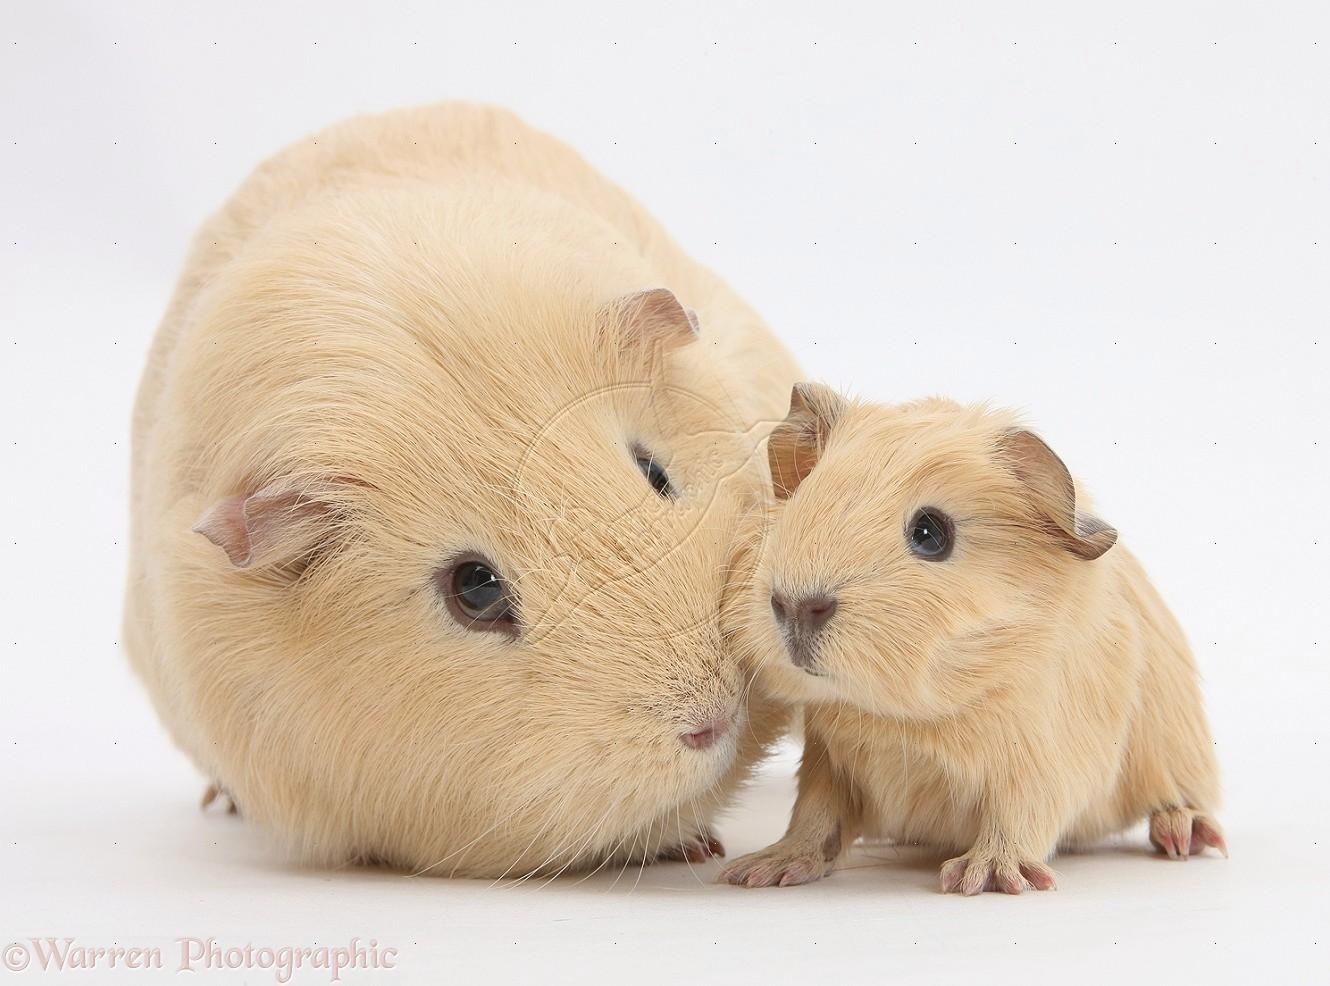 Guinea pig wallpaper hd download for Free guinea pig stuff